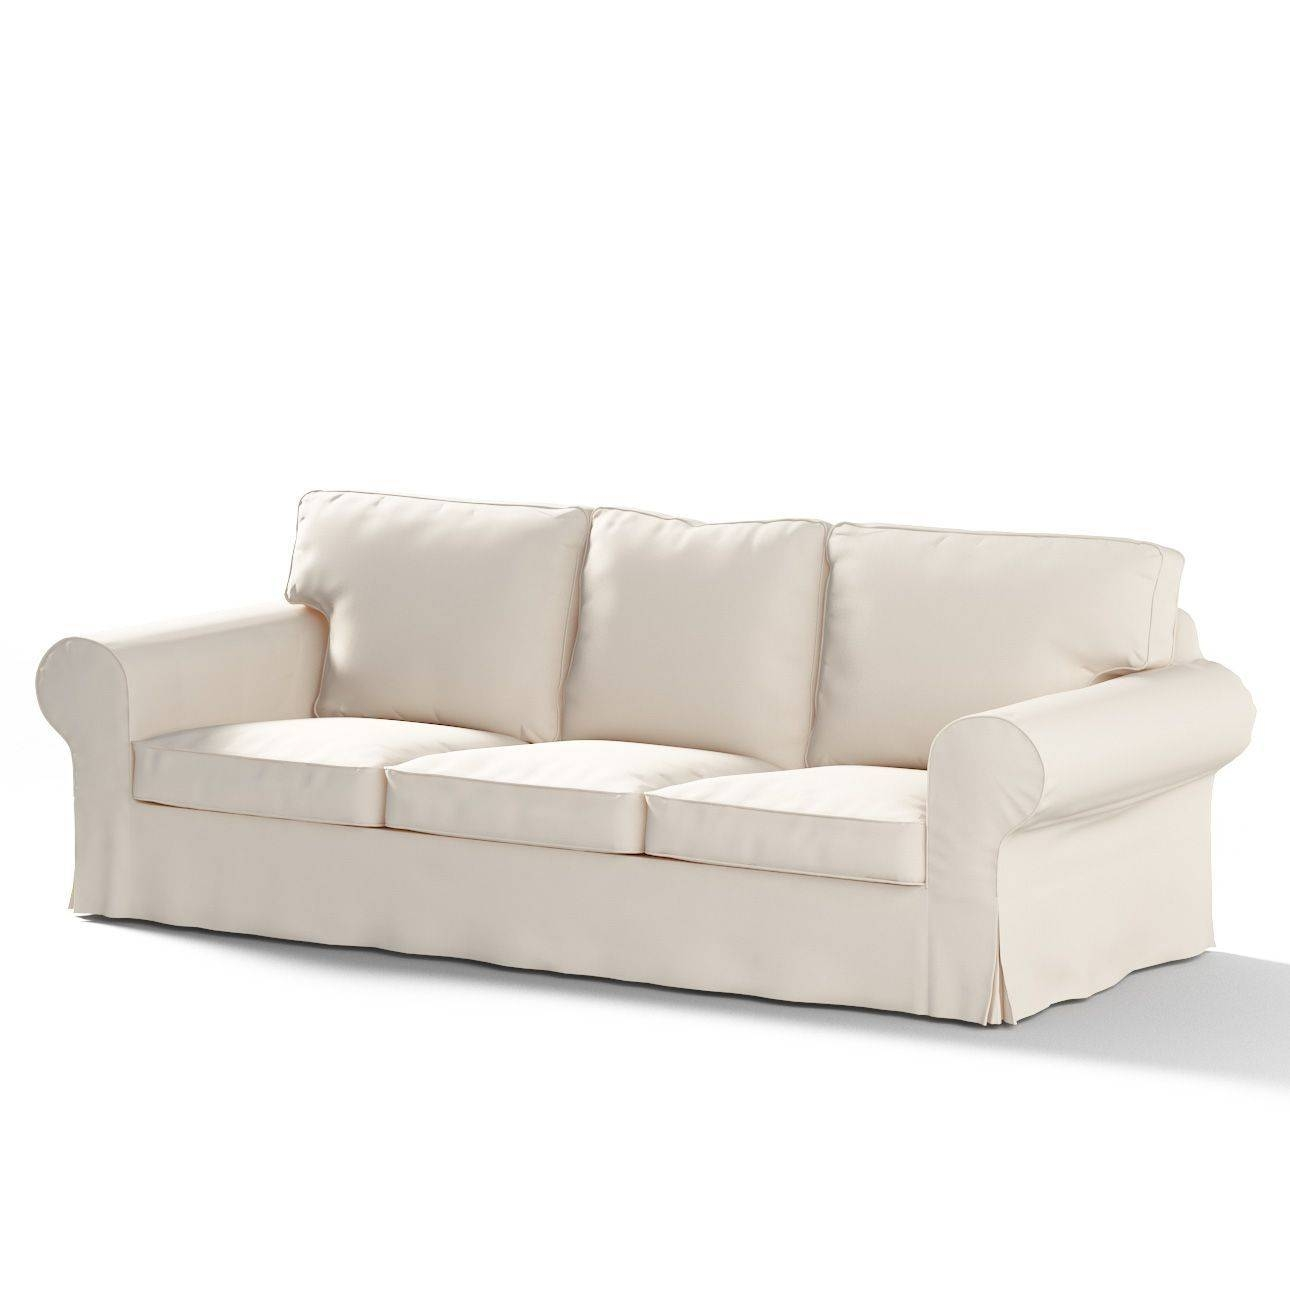 Furniture: Ikea Corner Sofa Bed | Ikea Couch Covers | Ikea Chair pertaining to Sofa With Washable Covers (Image 4 of 30)